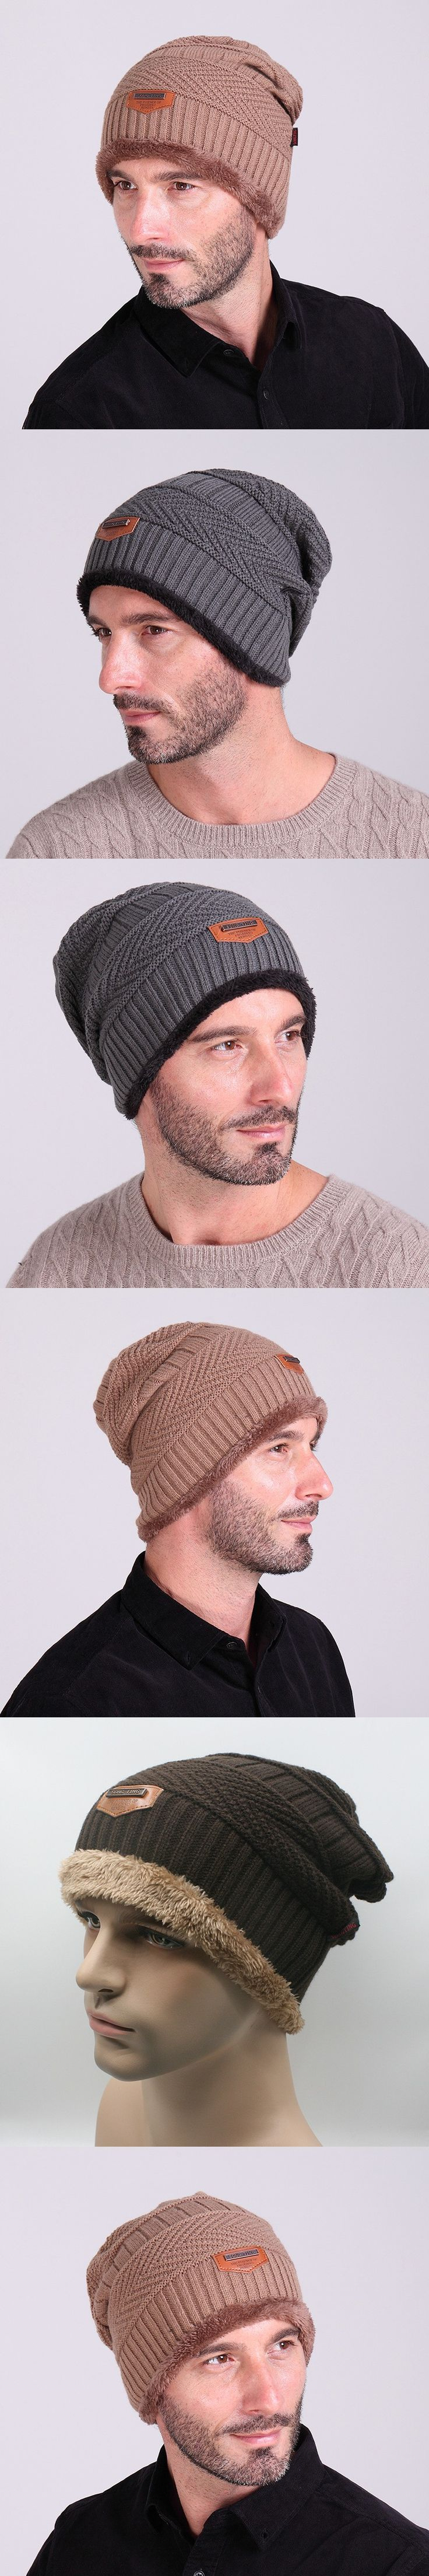 2016 Casual Men Winter Hat Knitted Cap with Warm Plush Hats for Men Beanie Outdoor Solid Black Grey Free Shipping G00743 $7.92